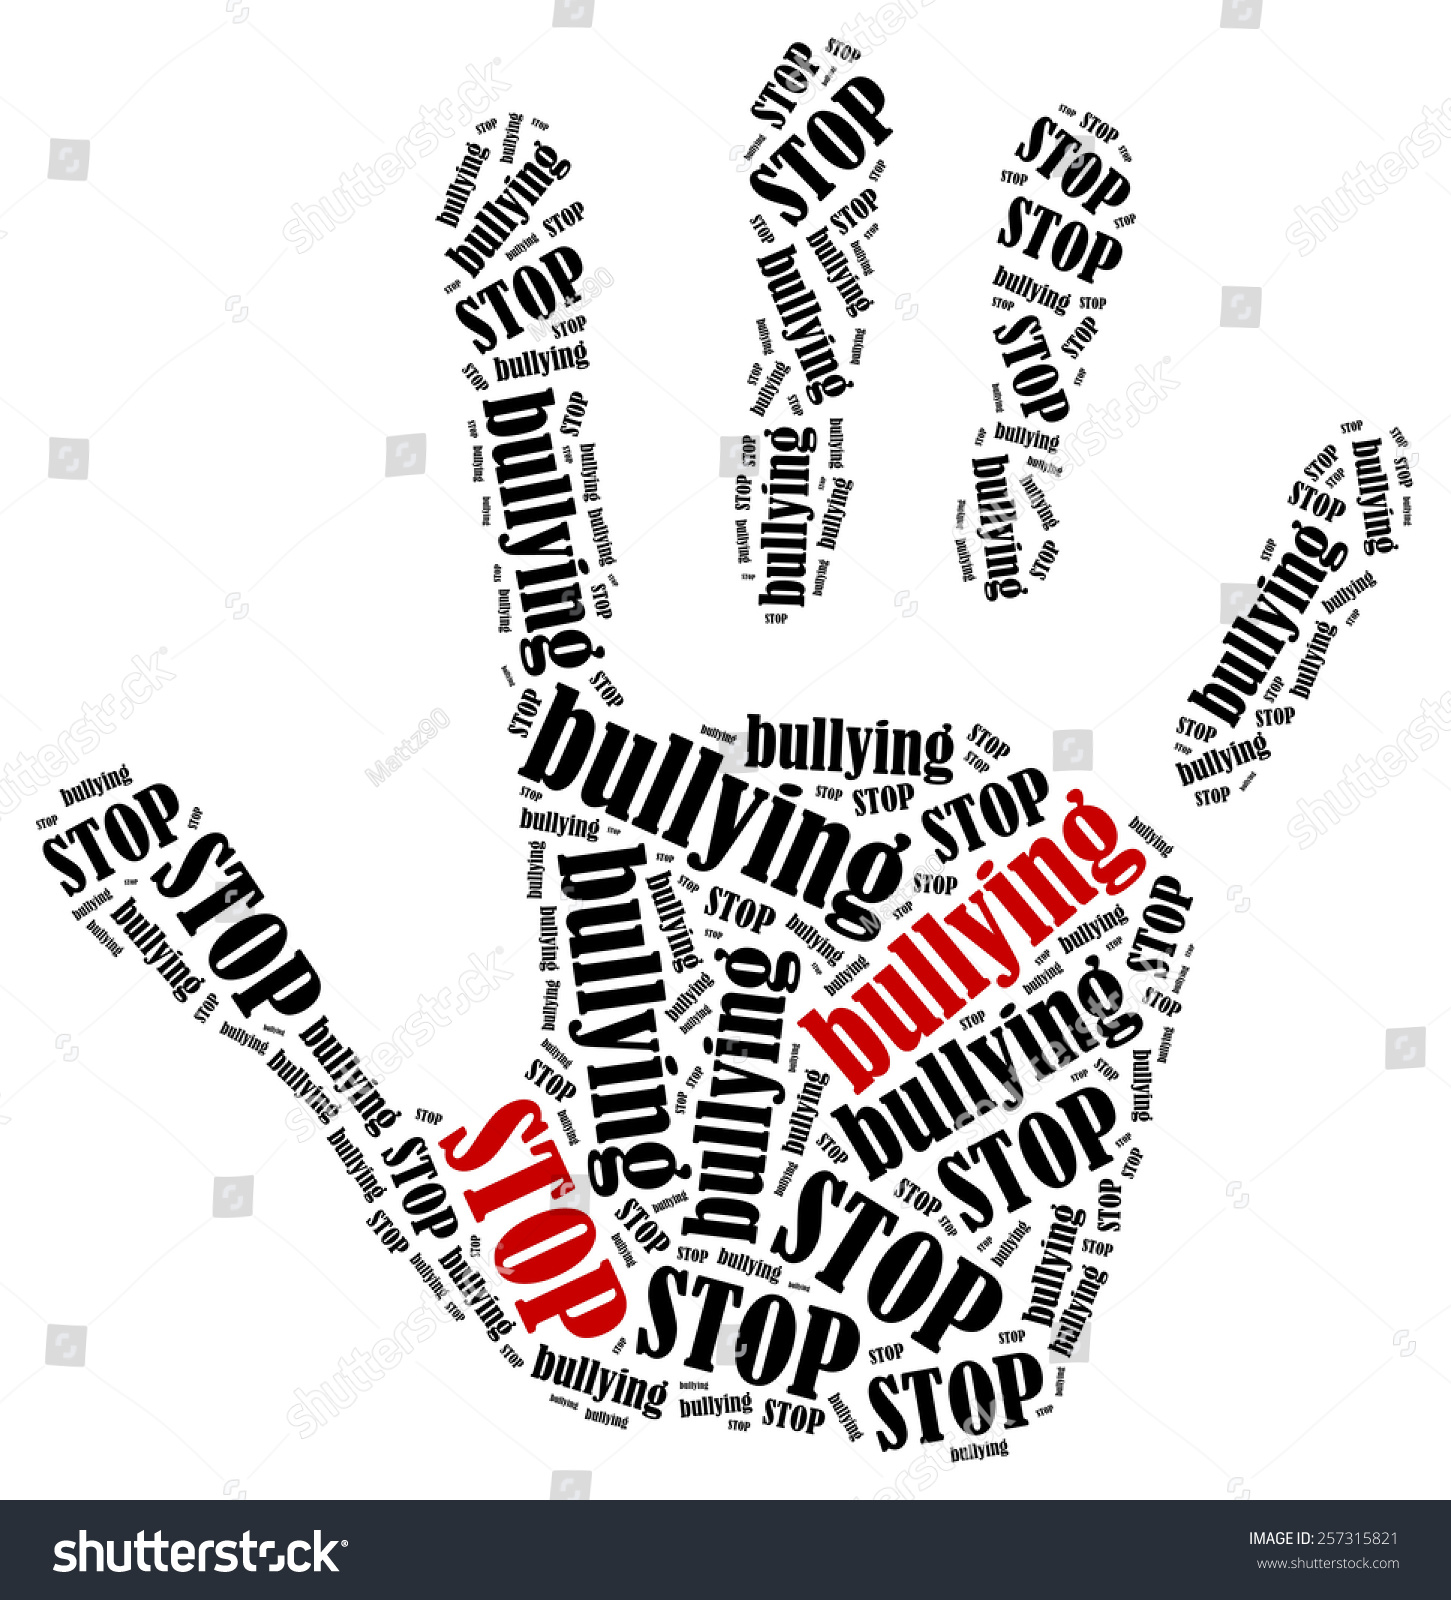 ... In Shape Of Hand Print Showing Protest. - 257315821 : Shutterstock